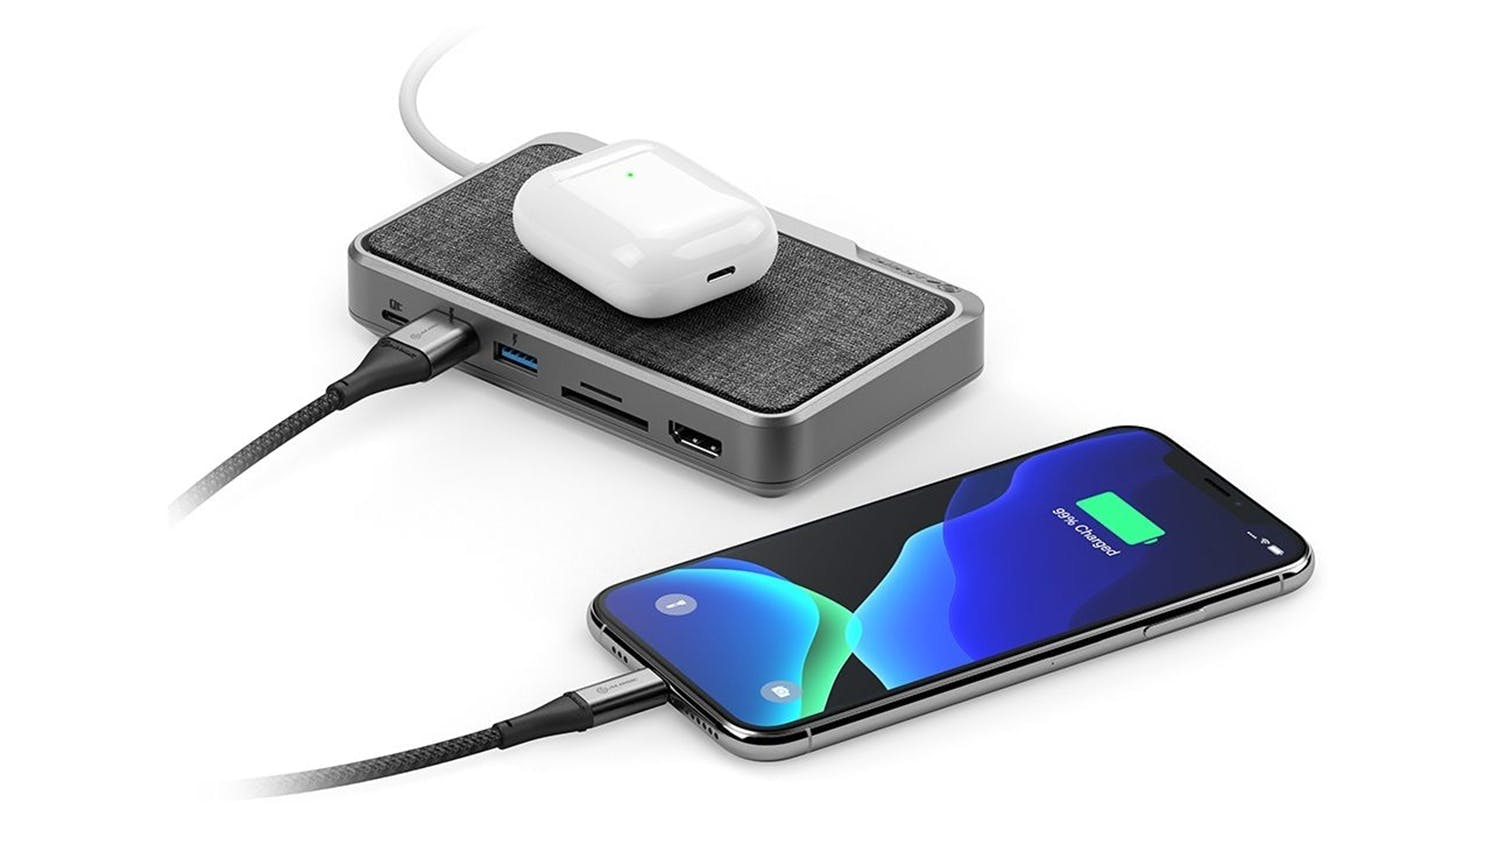 Alogic USB-C Ultra Dock Wave All-in-One